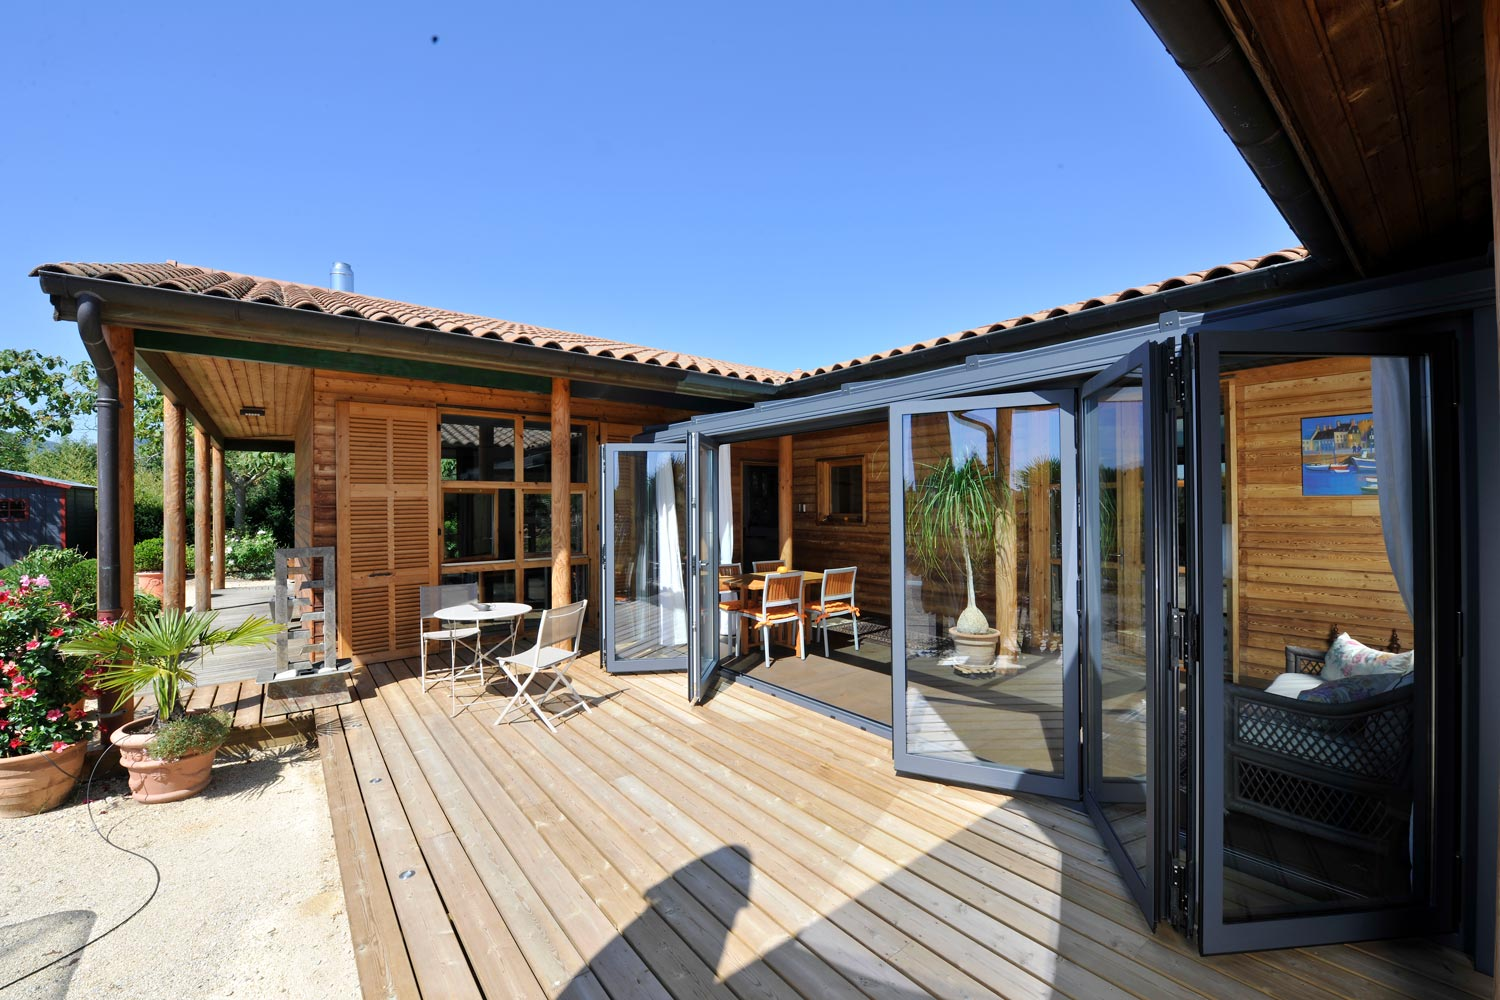 Reynaers CF68 Bifolding Doors manufactured by Southern Windows